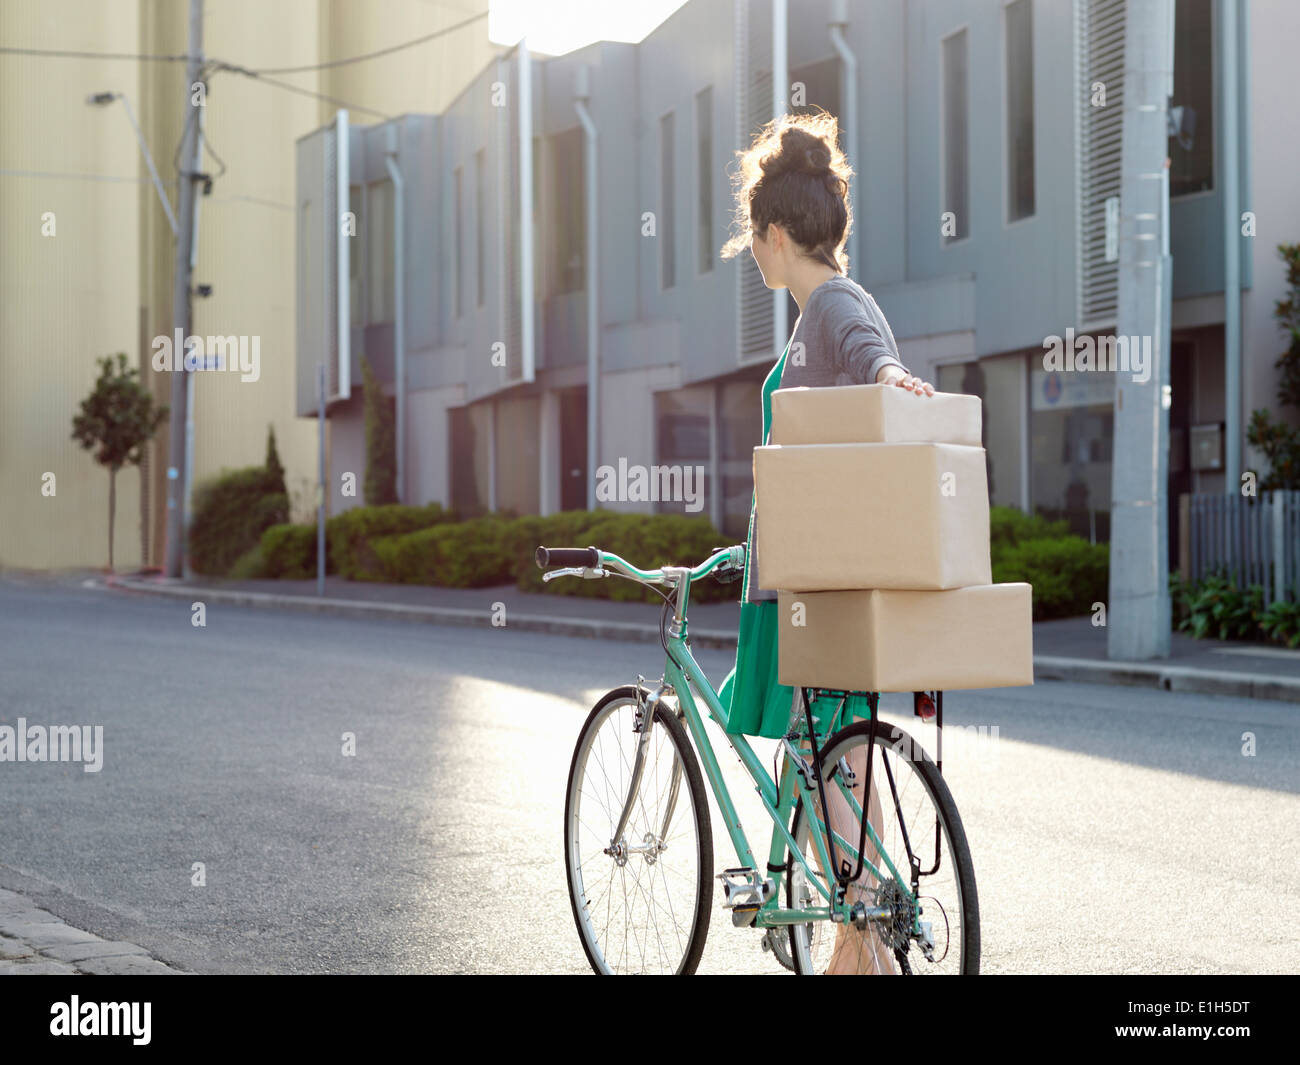 Young woman pushing bicycle with cardboard boxes - Stock Image